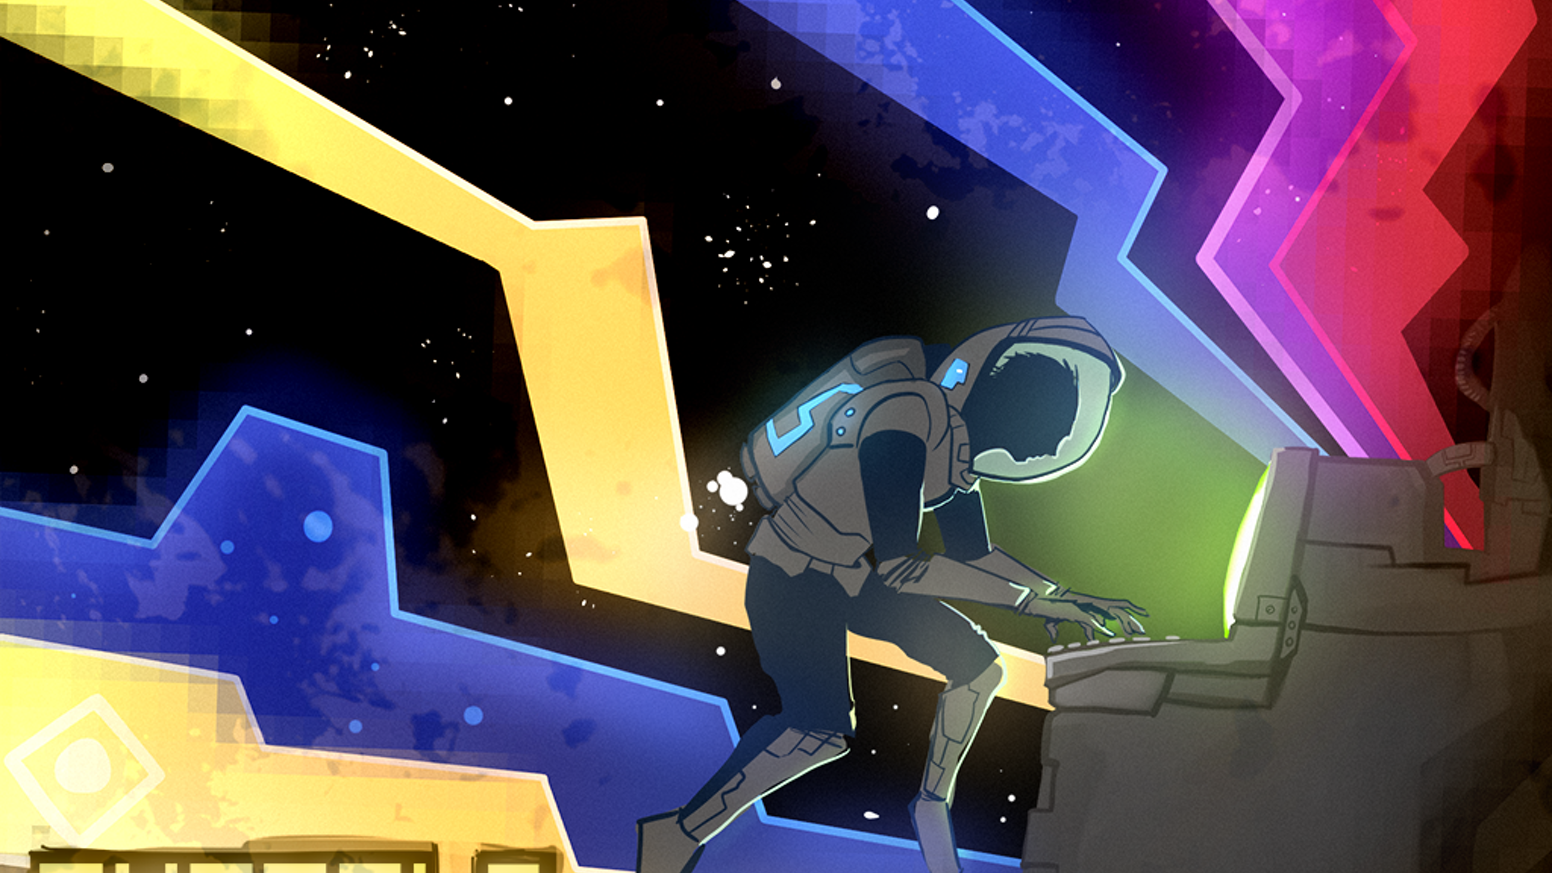 Reactivate a derelict spaceship in zero-G. Experience memories from your past. A story-based action-adventure game for PC, Mac & Linux.